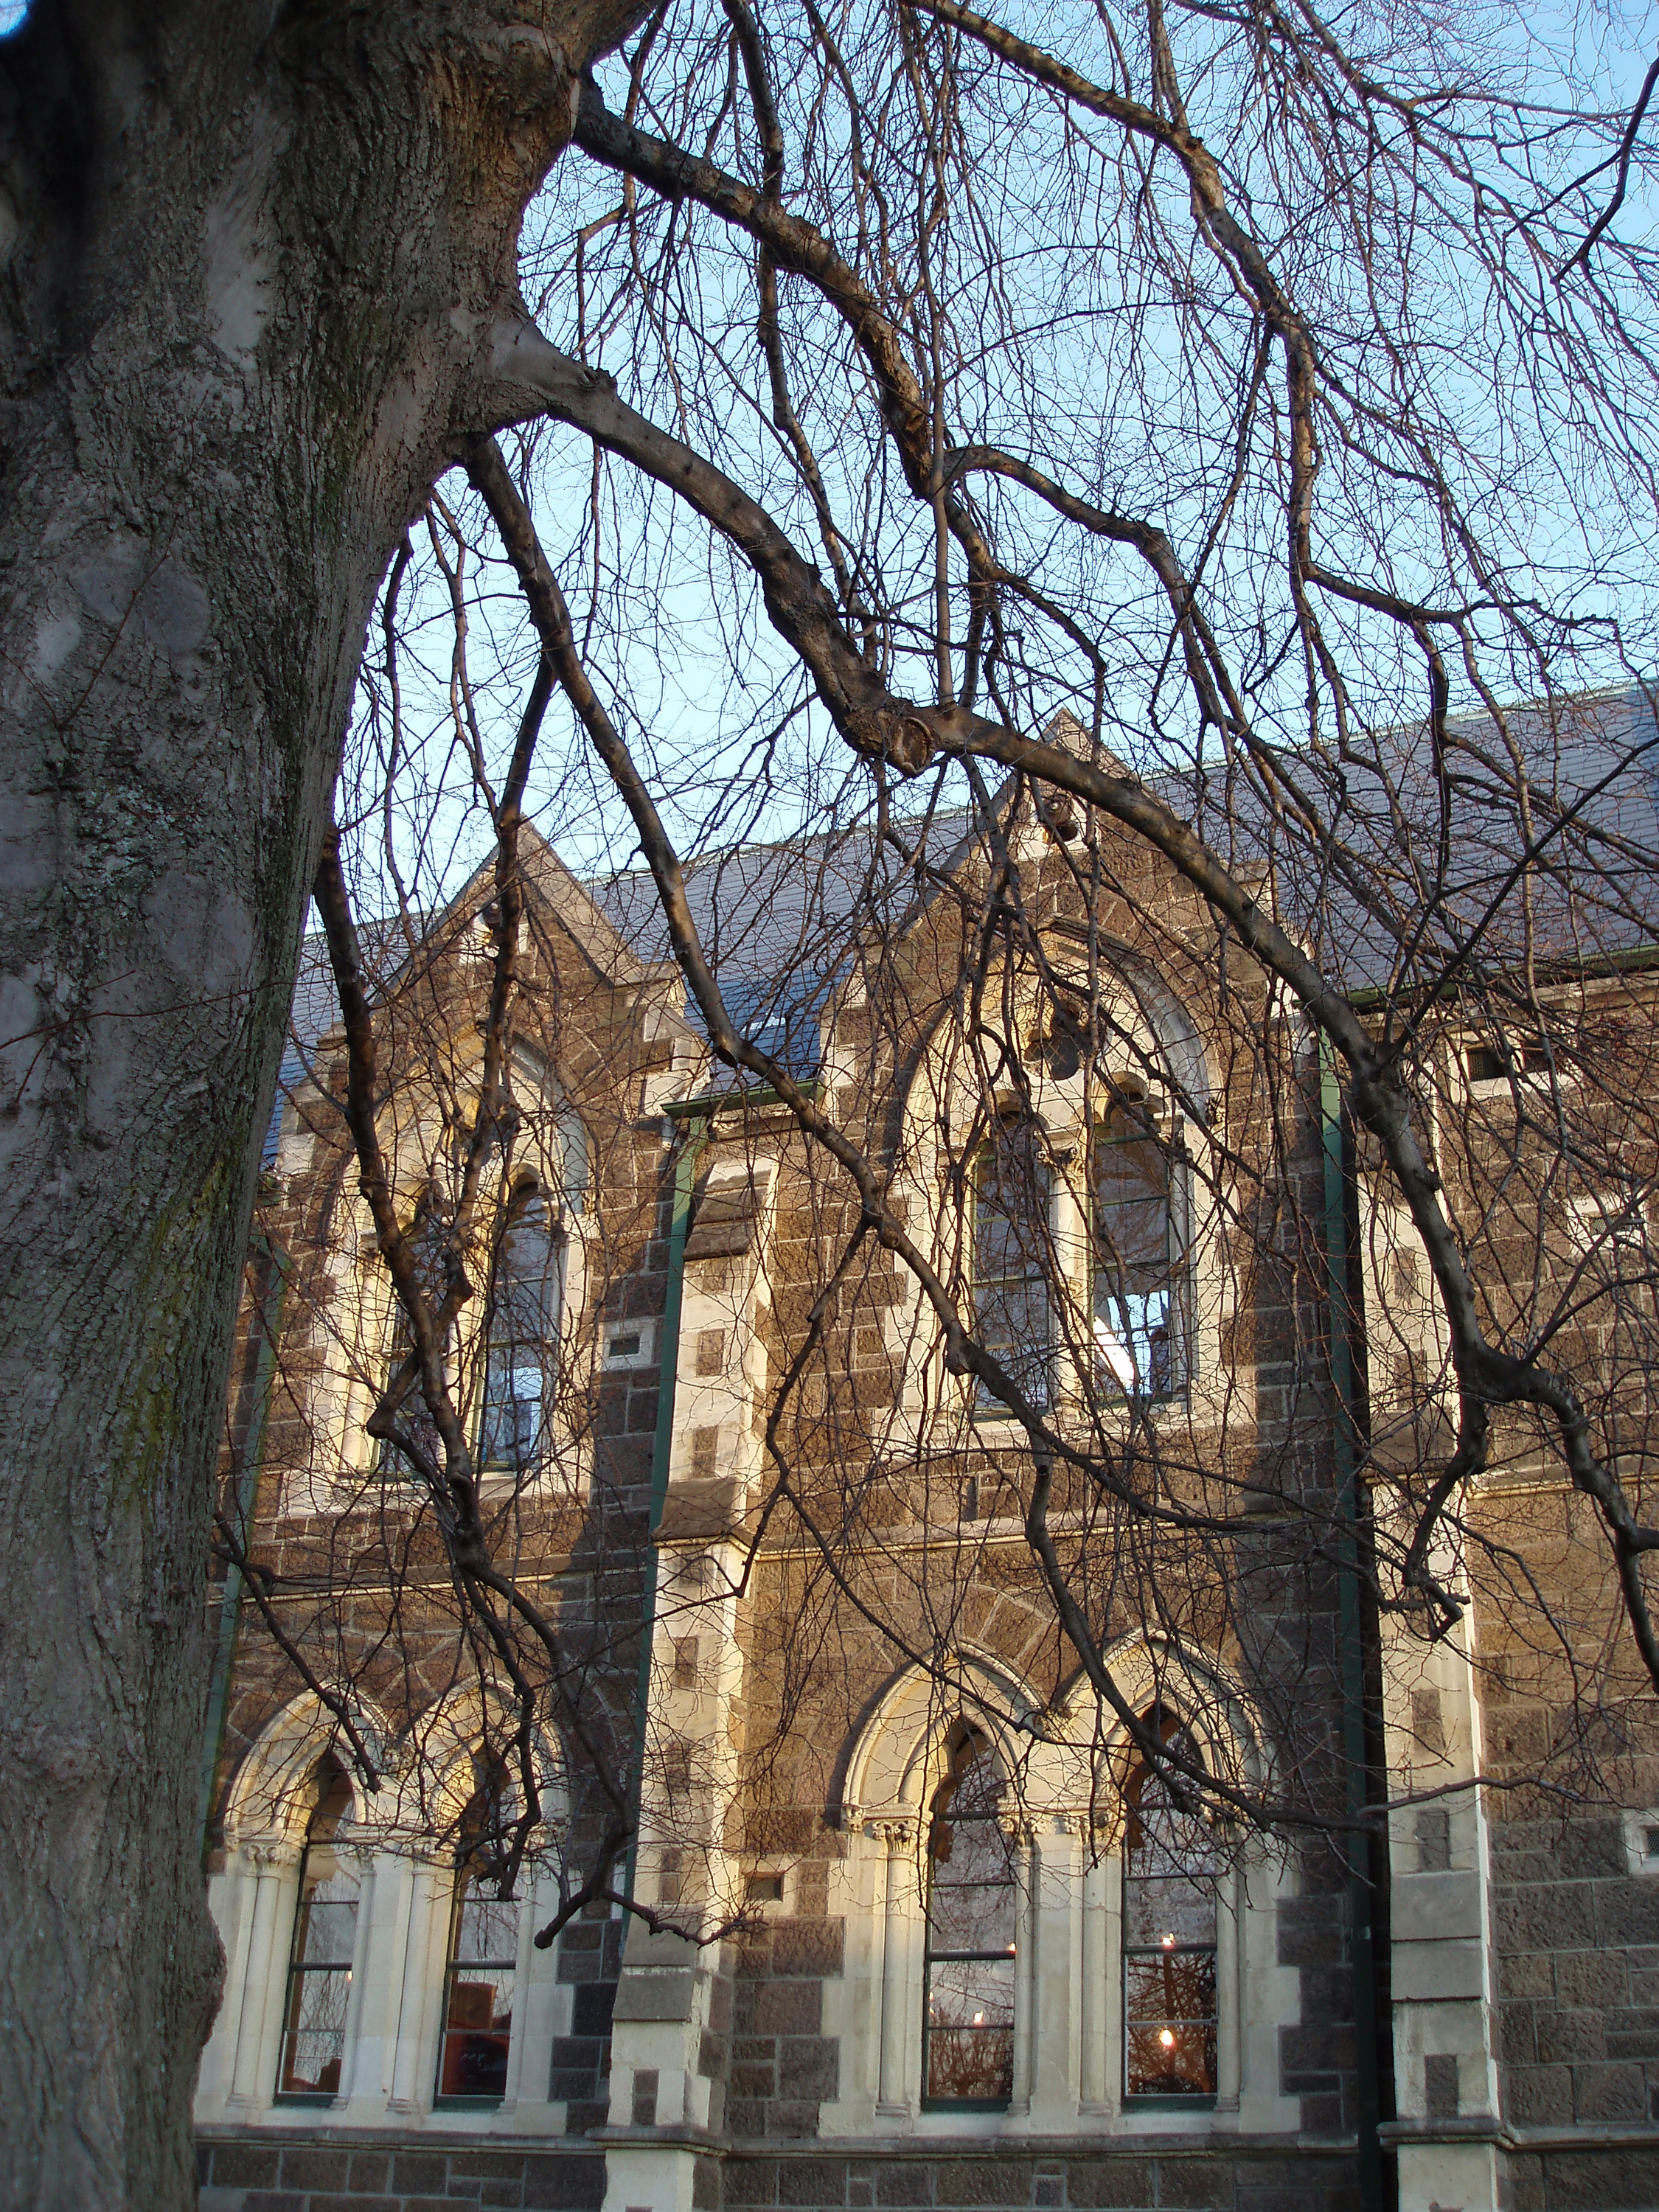 former university of canterbury buildings, christchurch stone windows old granite